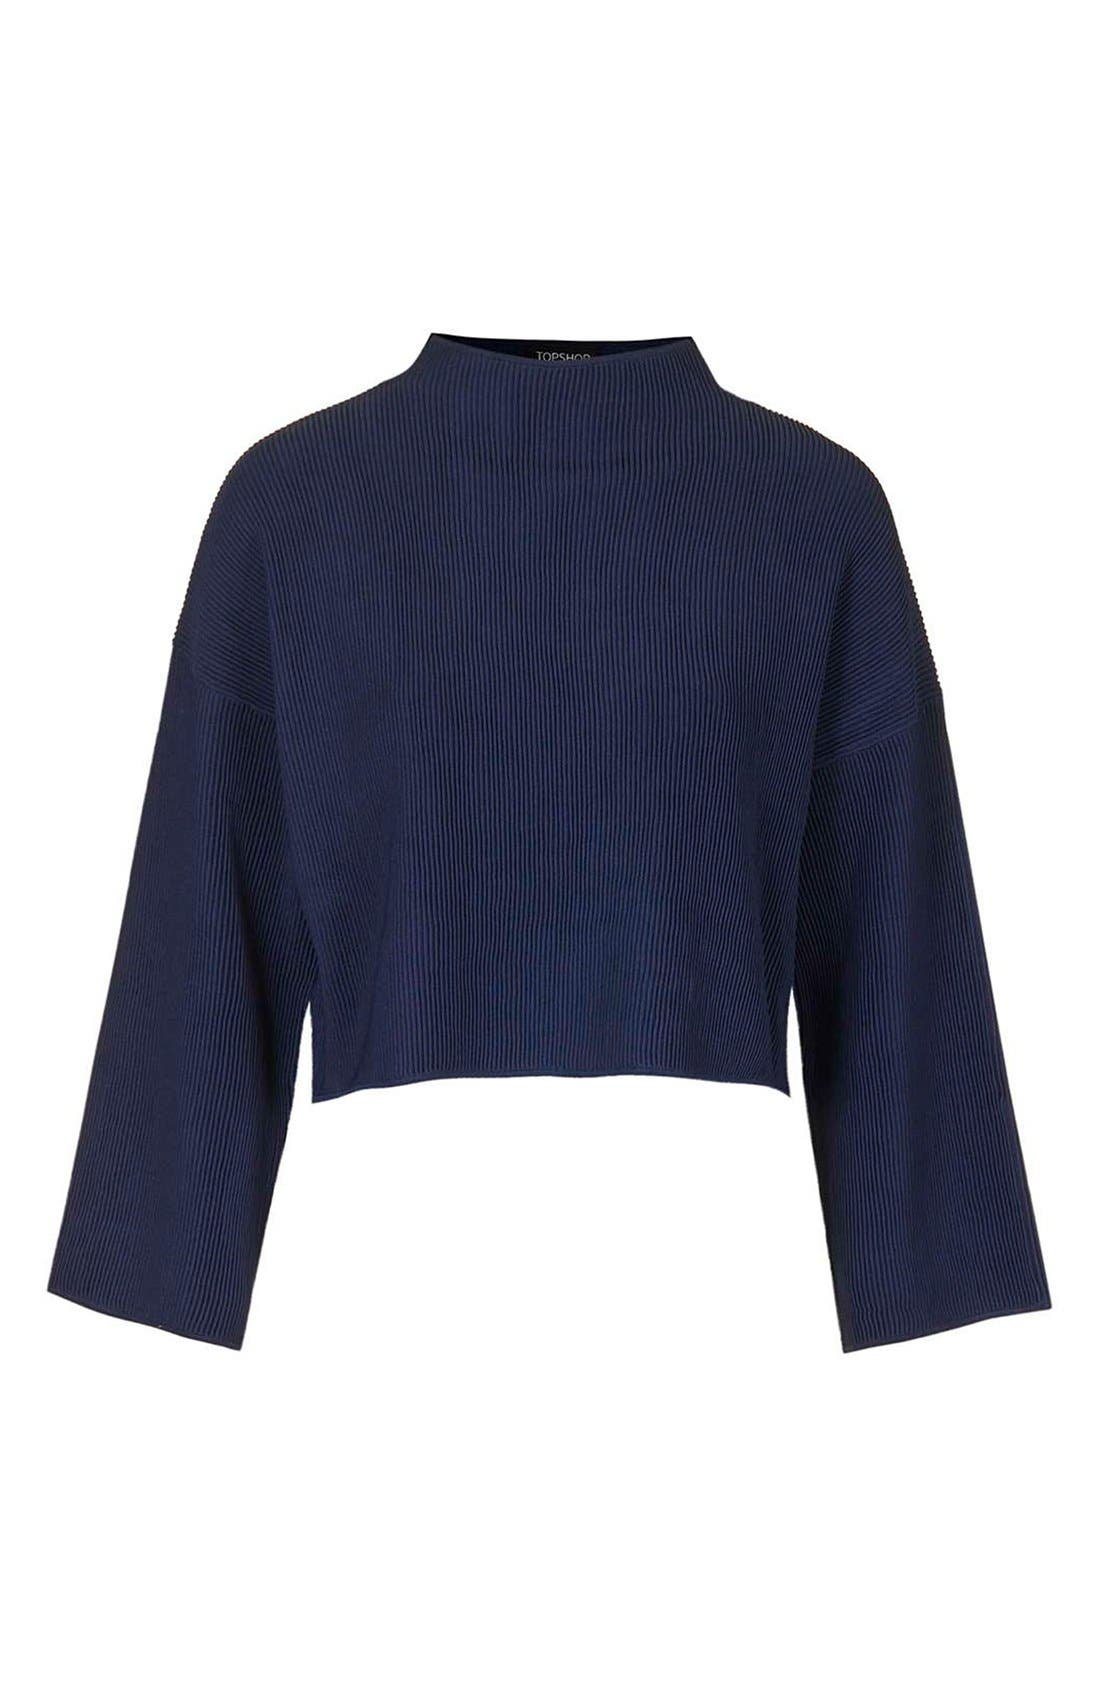 Funnel Neck Ribbed Crop Top,                             Alternate thumbnail 2, color,                             410